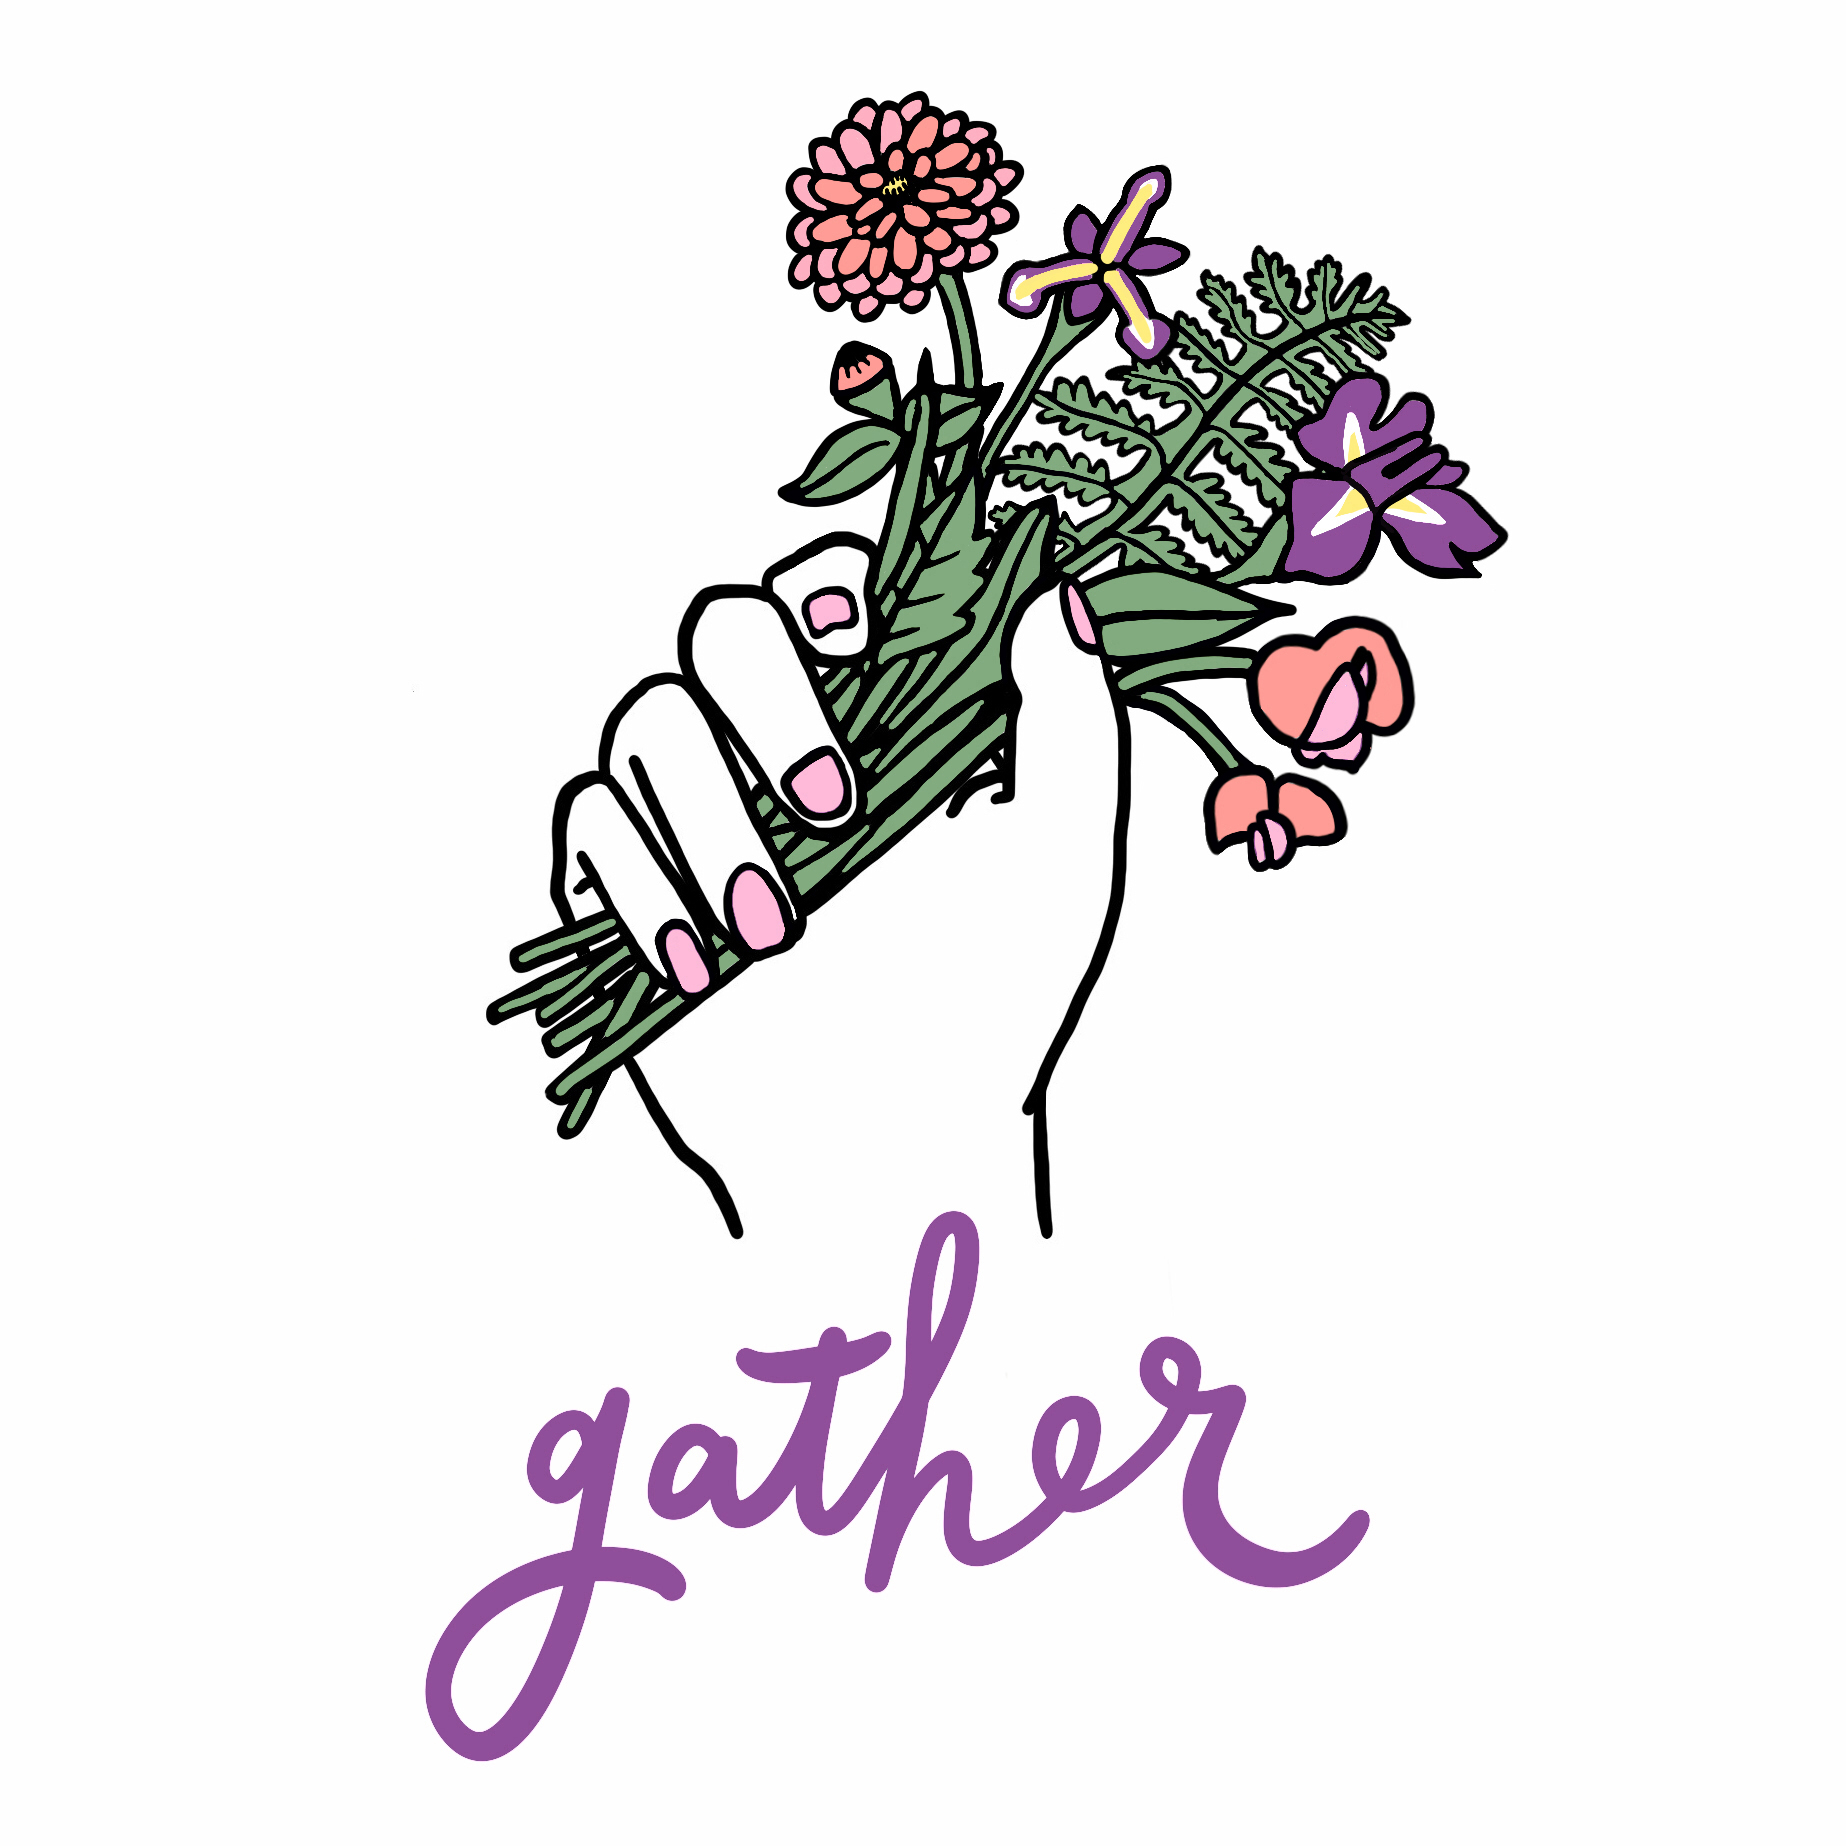 gather_colors_final.jpg